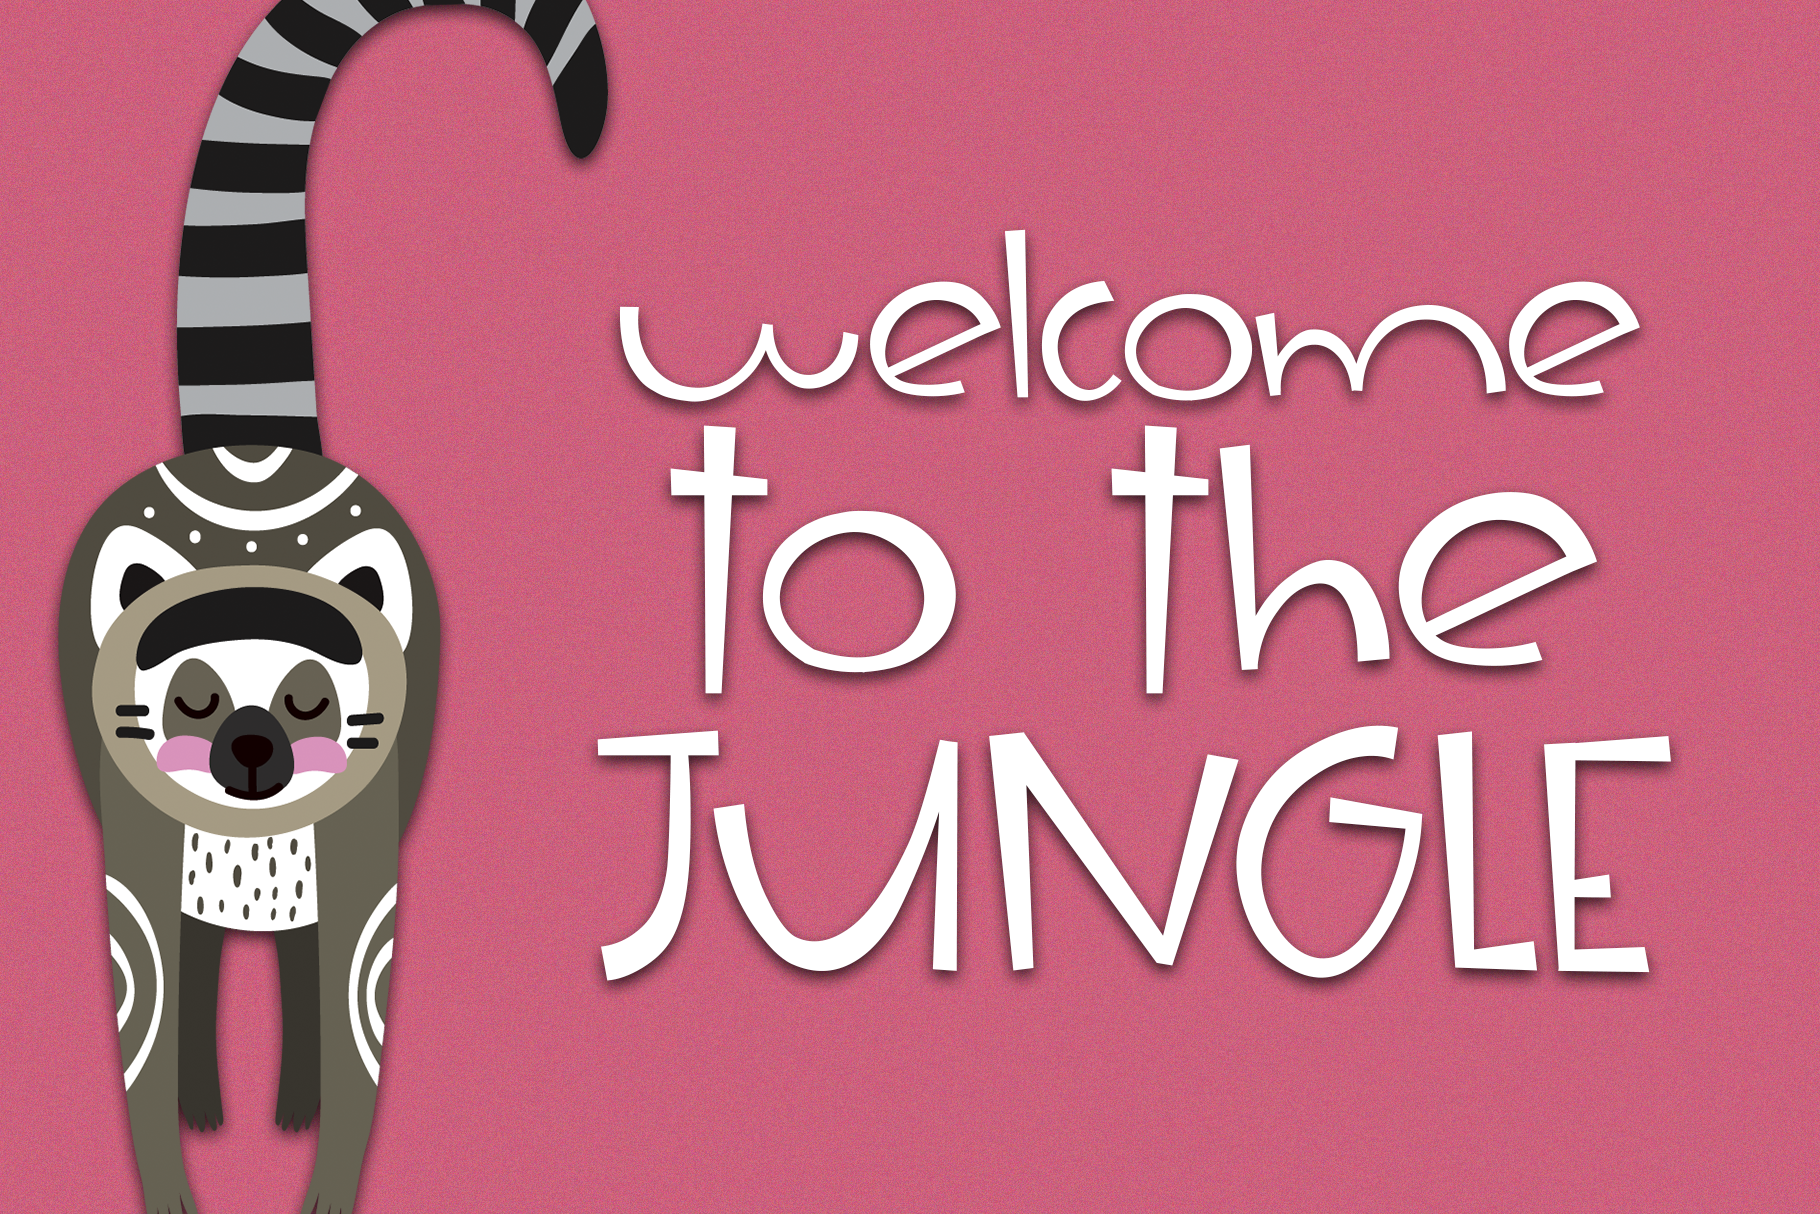 The Jungle - A Fun & Quirky Handwritten Font example image 8